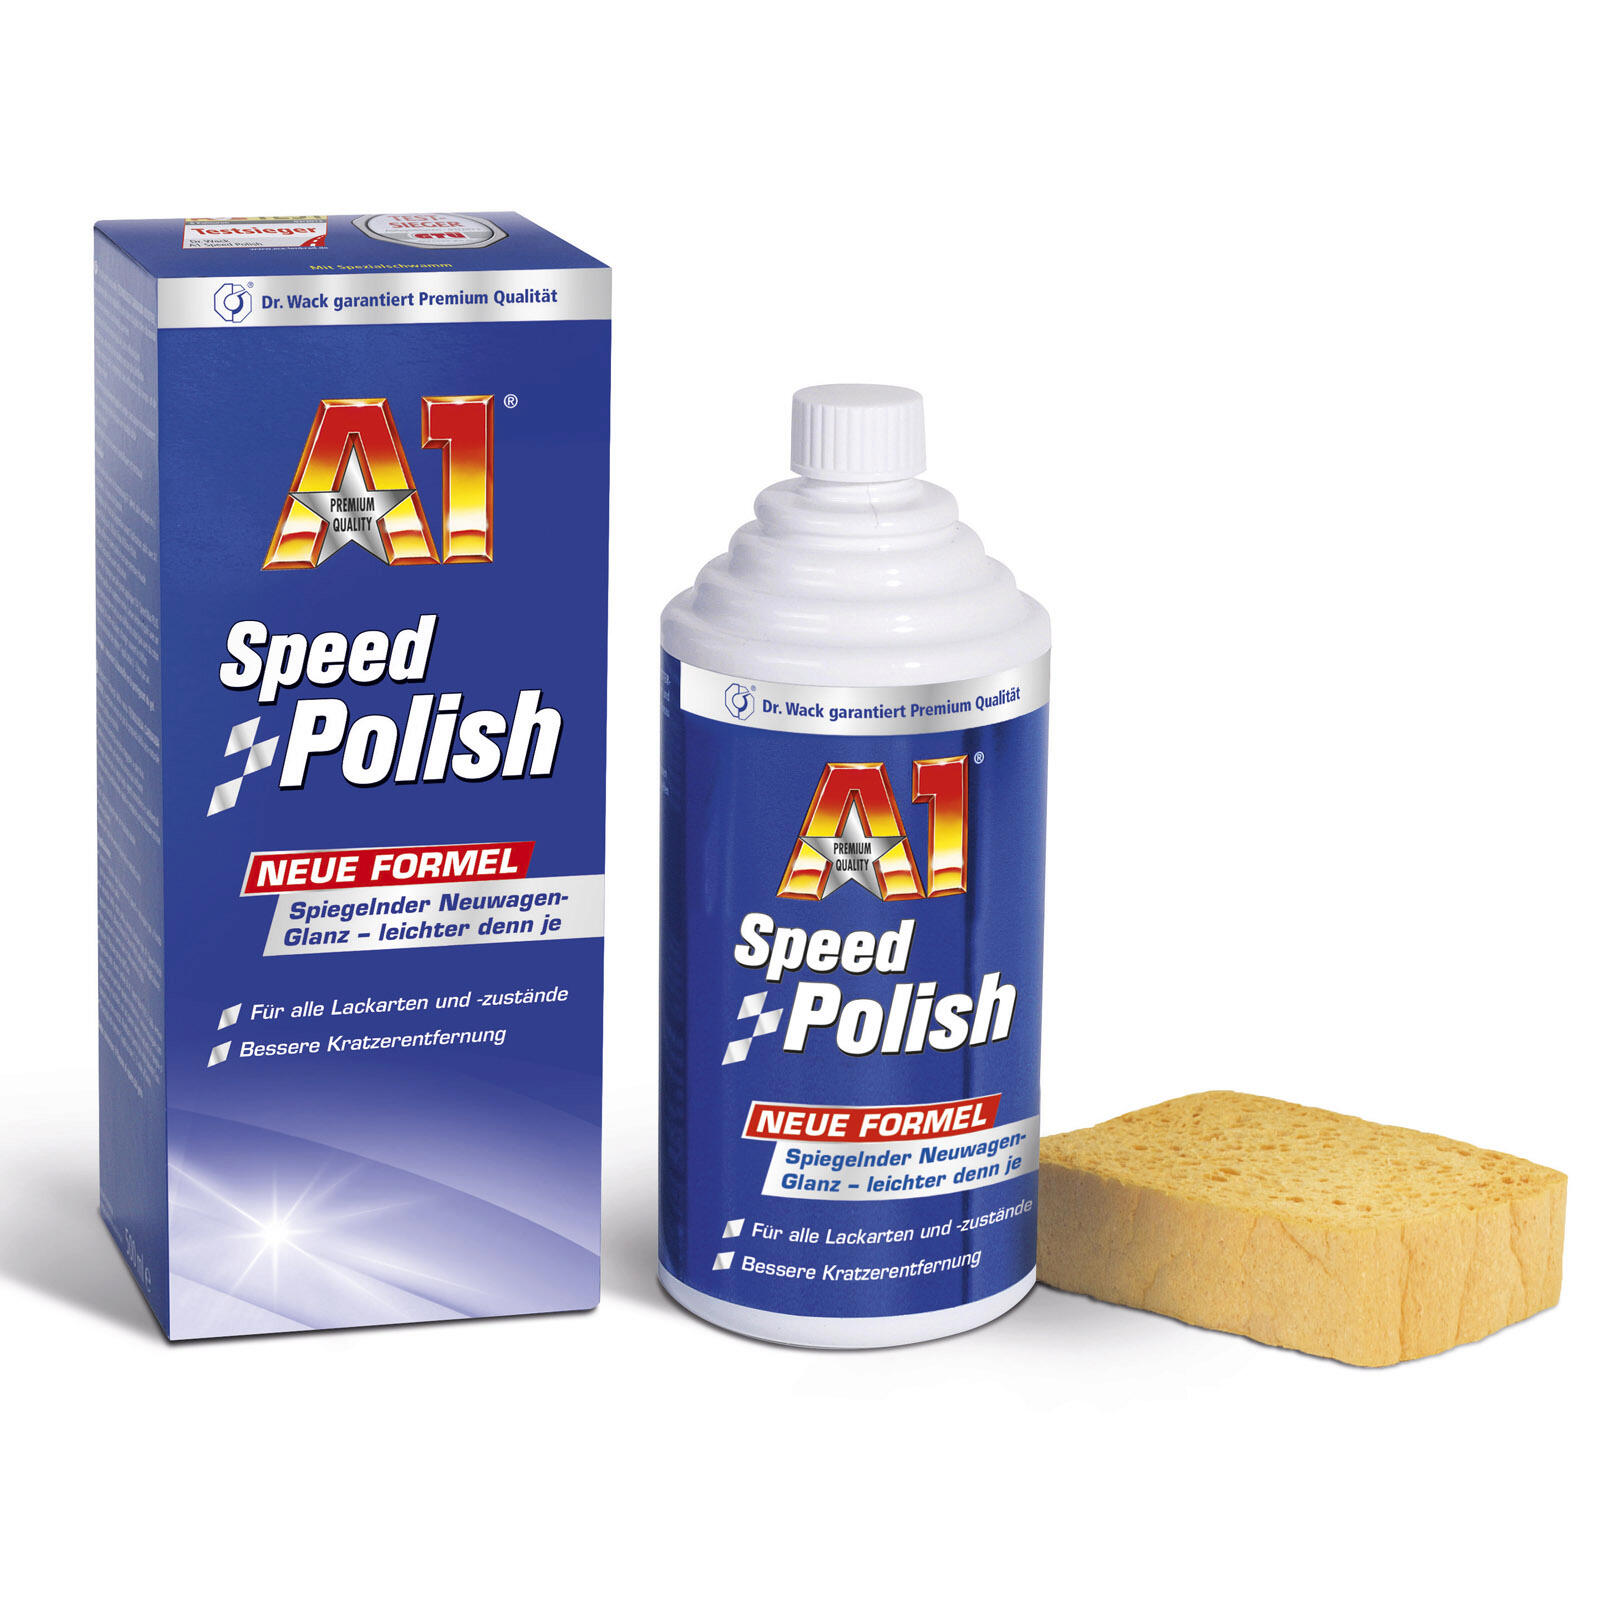 Dr.Wack A1 Speed Polish 500 ML spiegelnder Original-Tiefenglanz // Versiegelung